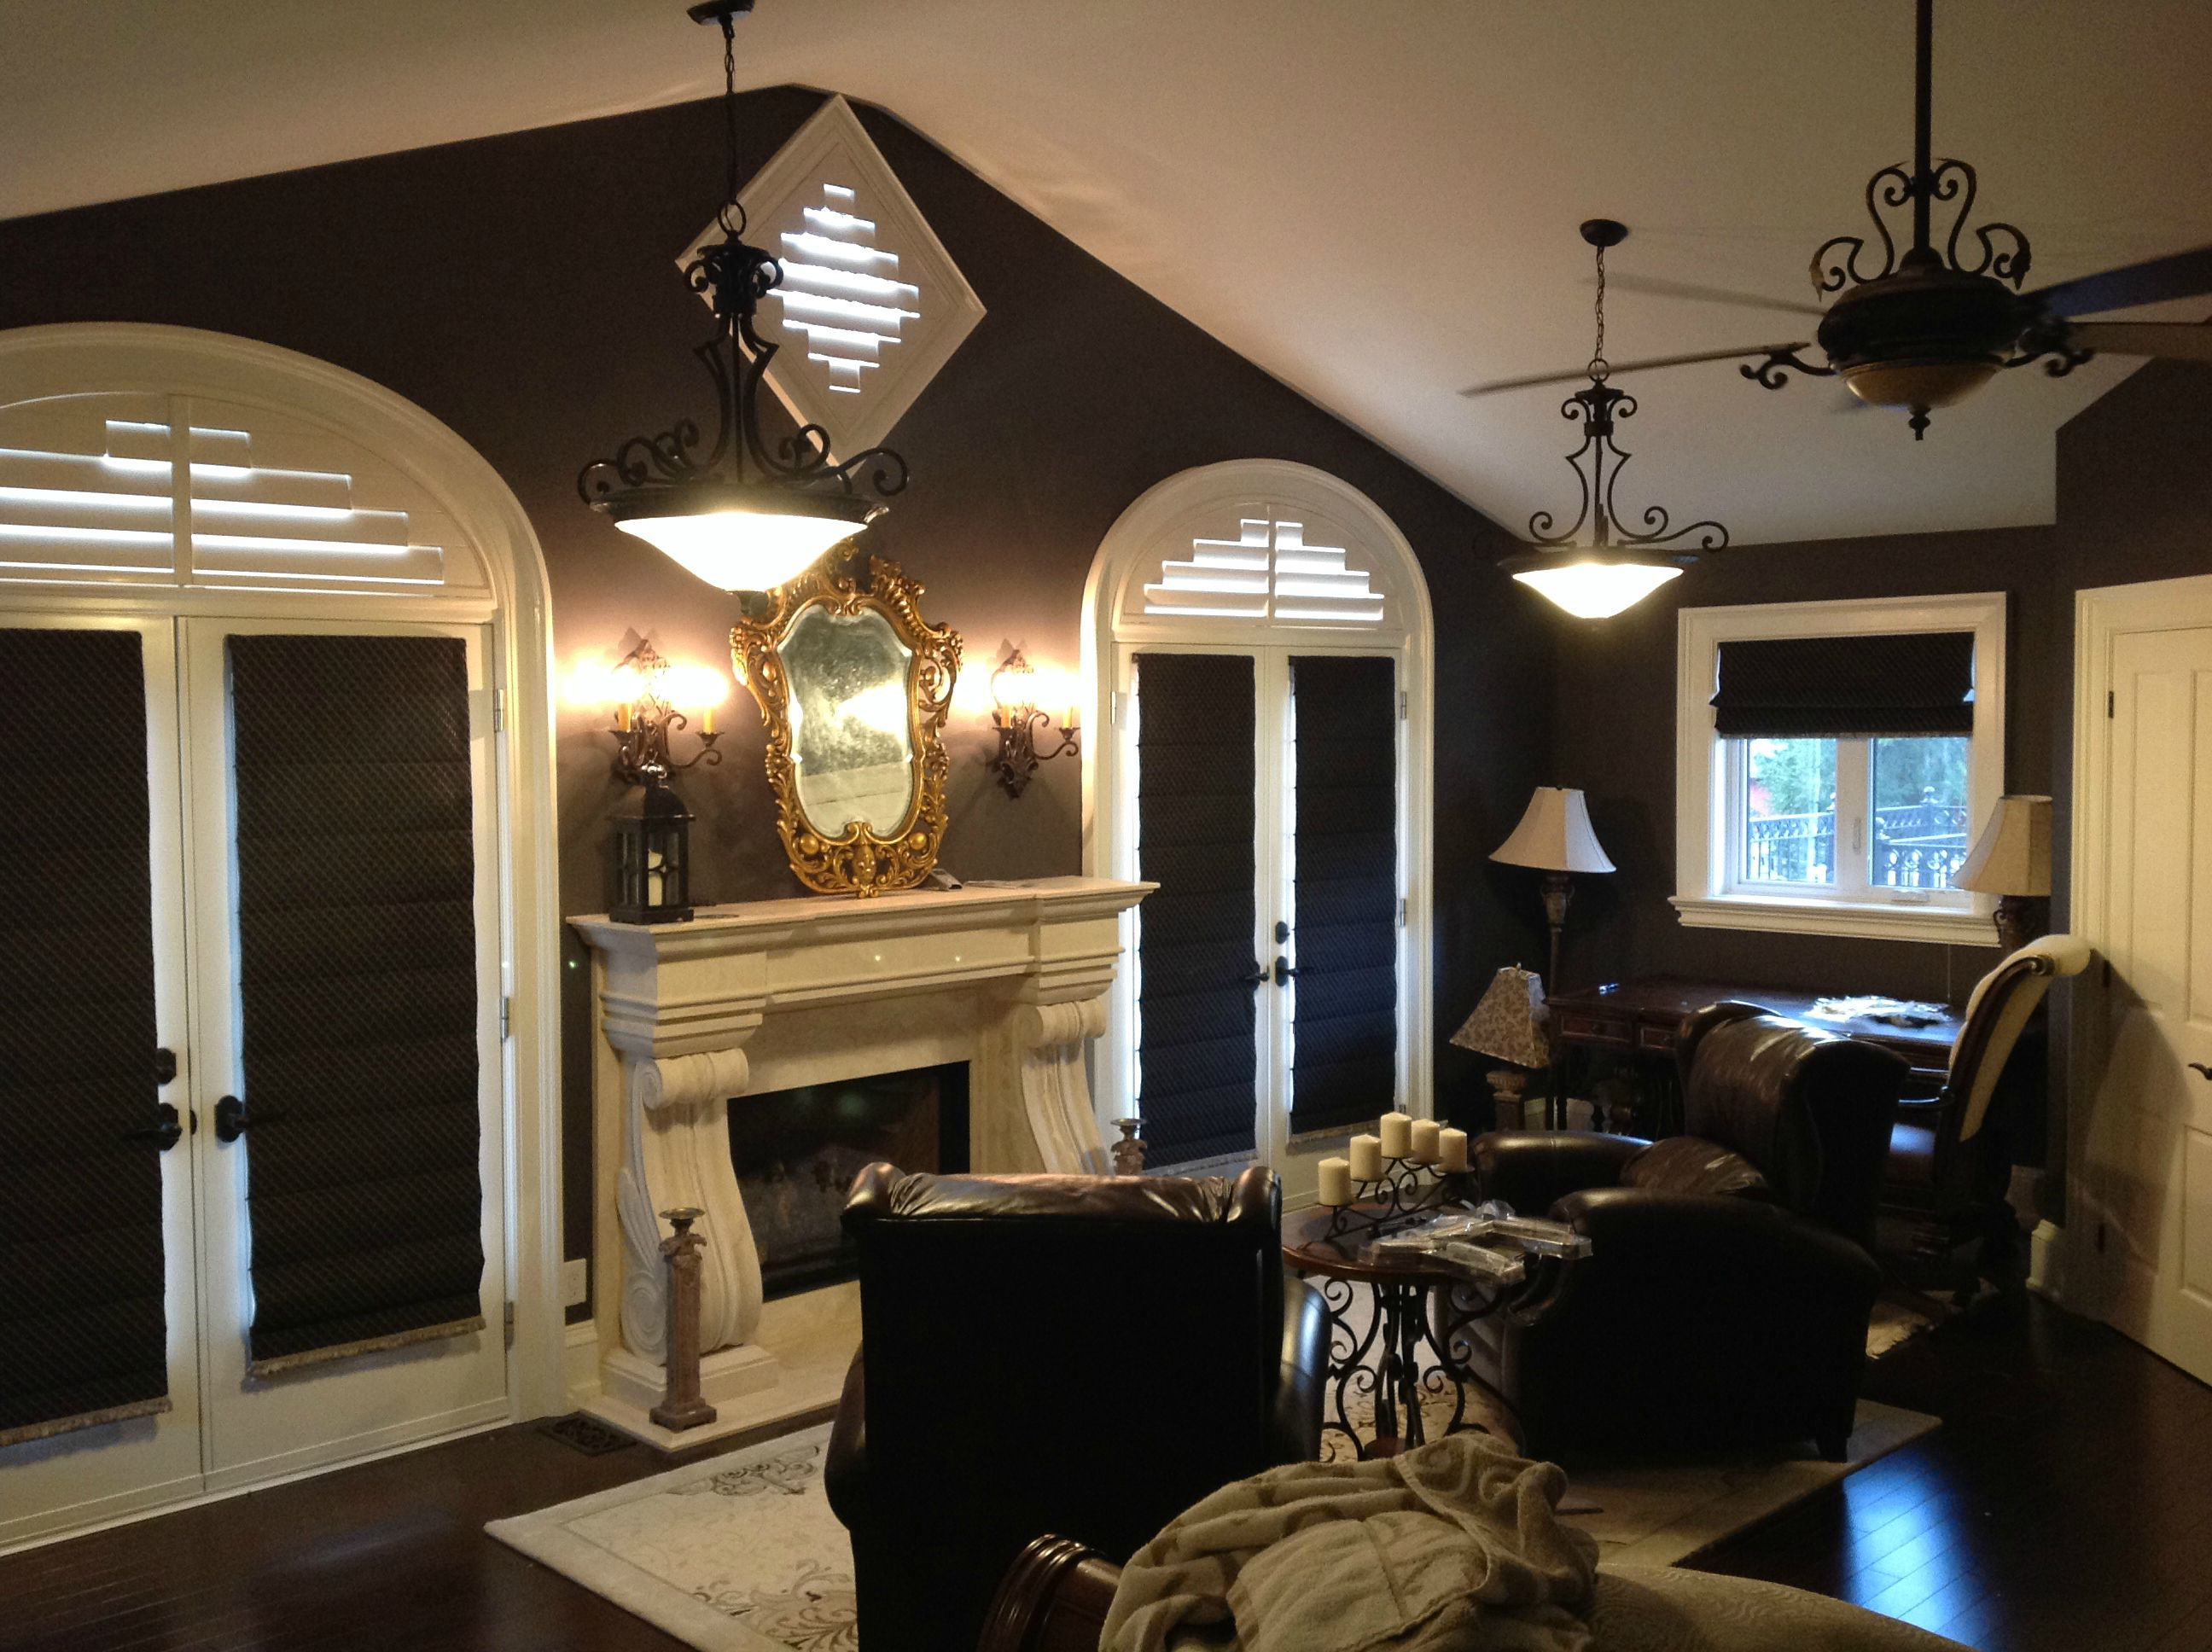 Blog archive 2016 home decor trends for Decor 2016